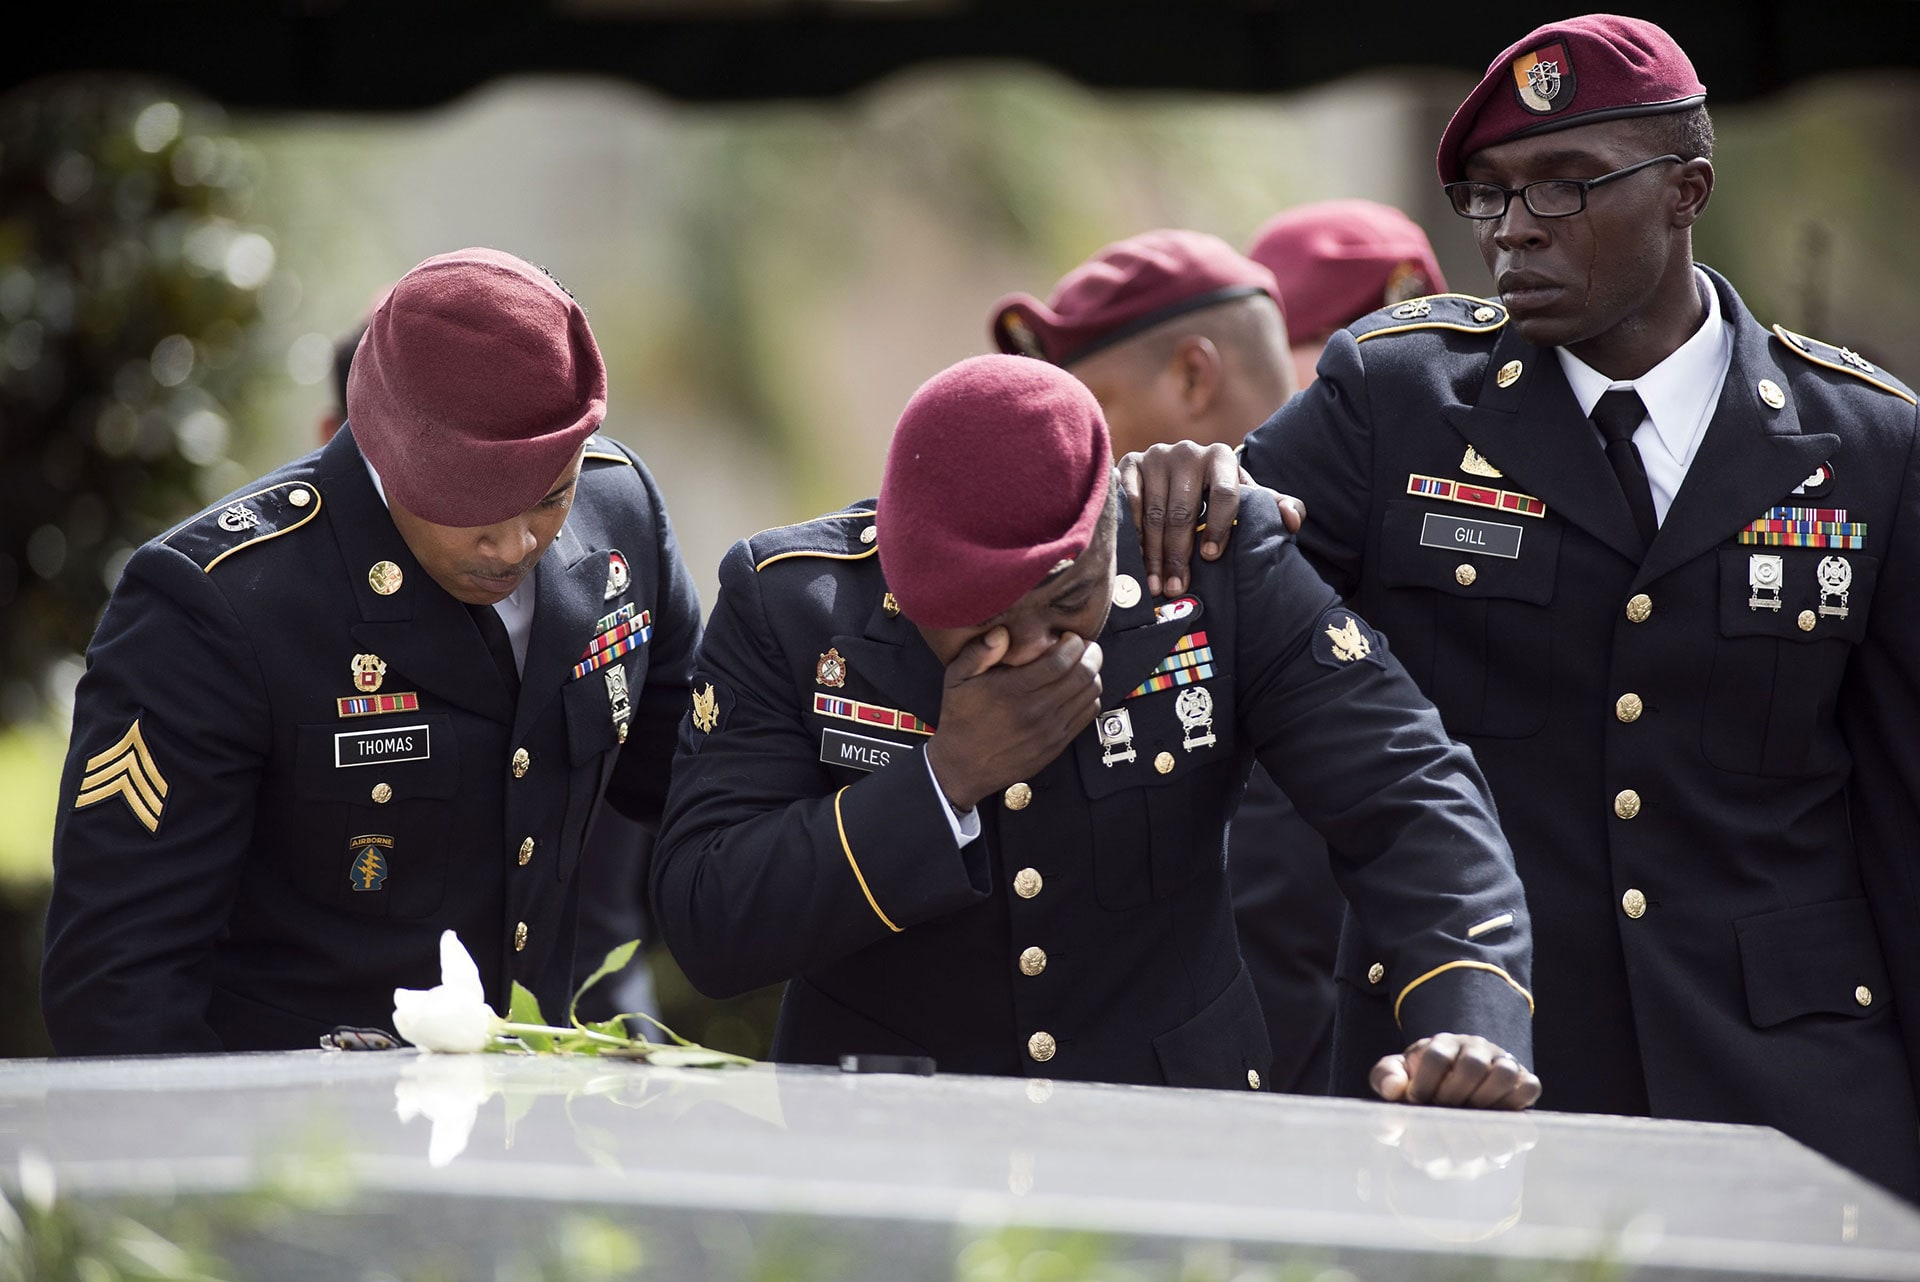 Members of the 3rd Special Forces Group, 2nd battalion, at the burial service